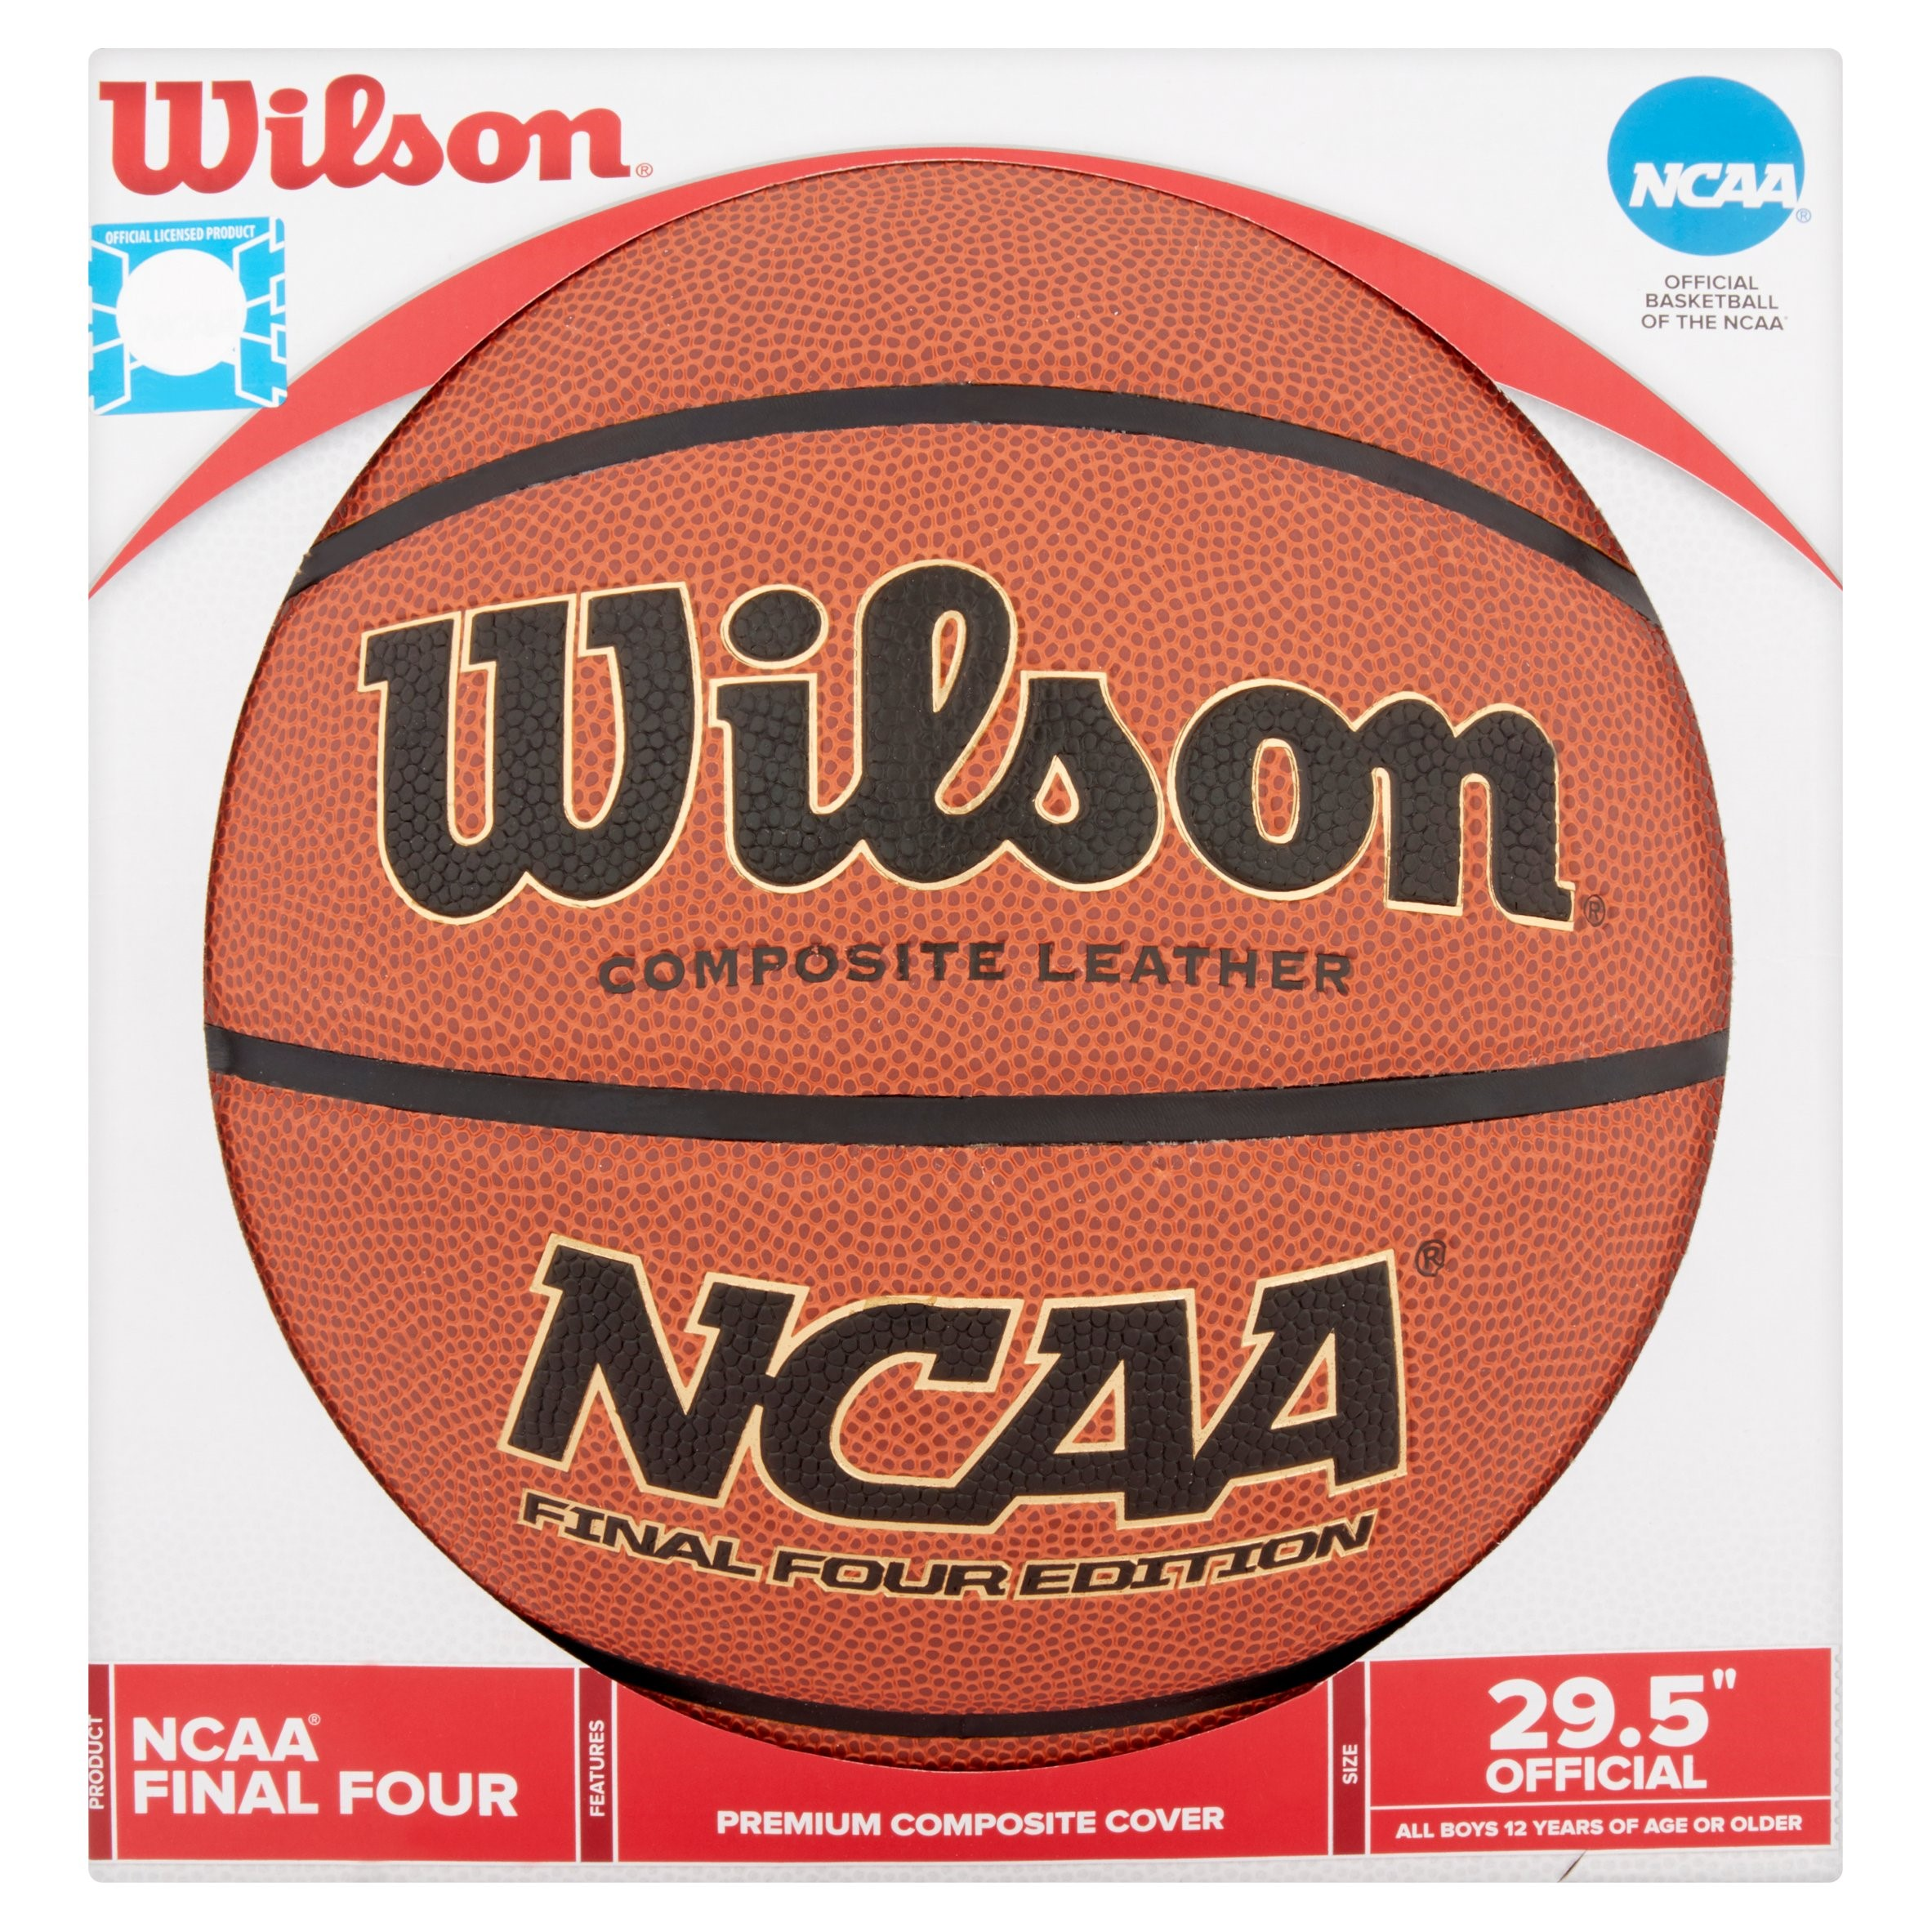 Wilson NCAA Final Four Edition Basketball 29.5""